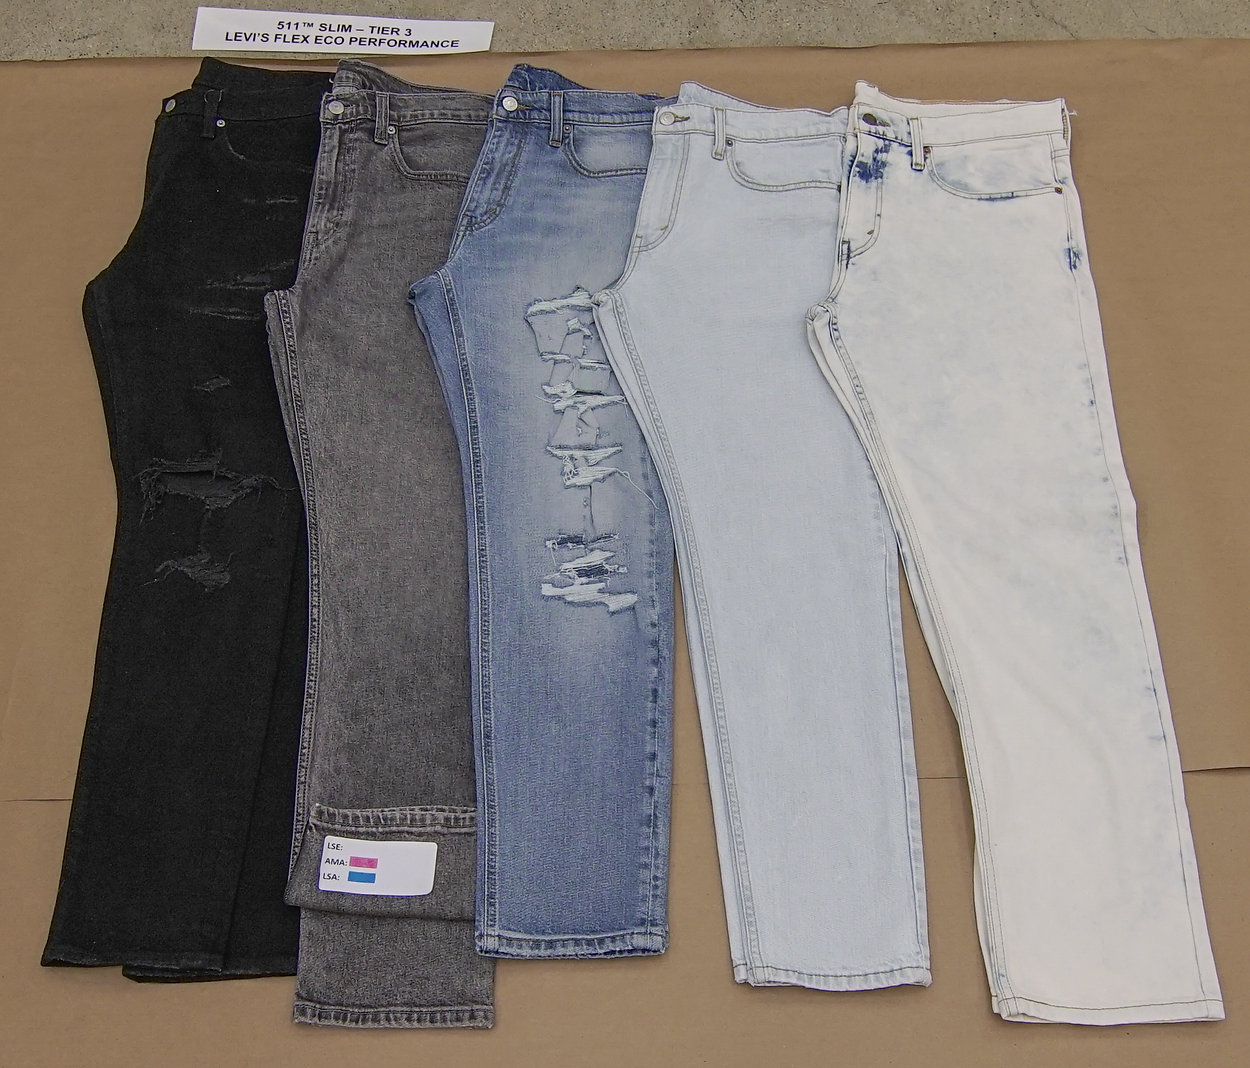 MB_511 SLIM - TIER 3 LEVIS FLEX ECO PERF